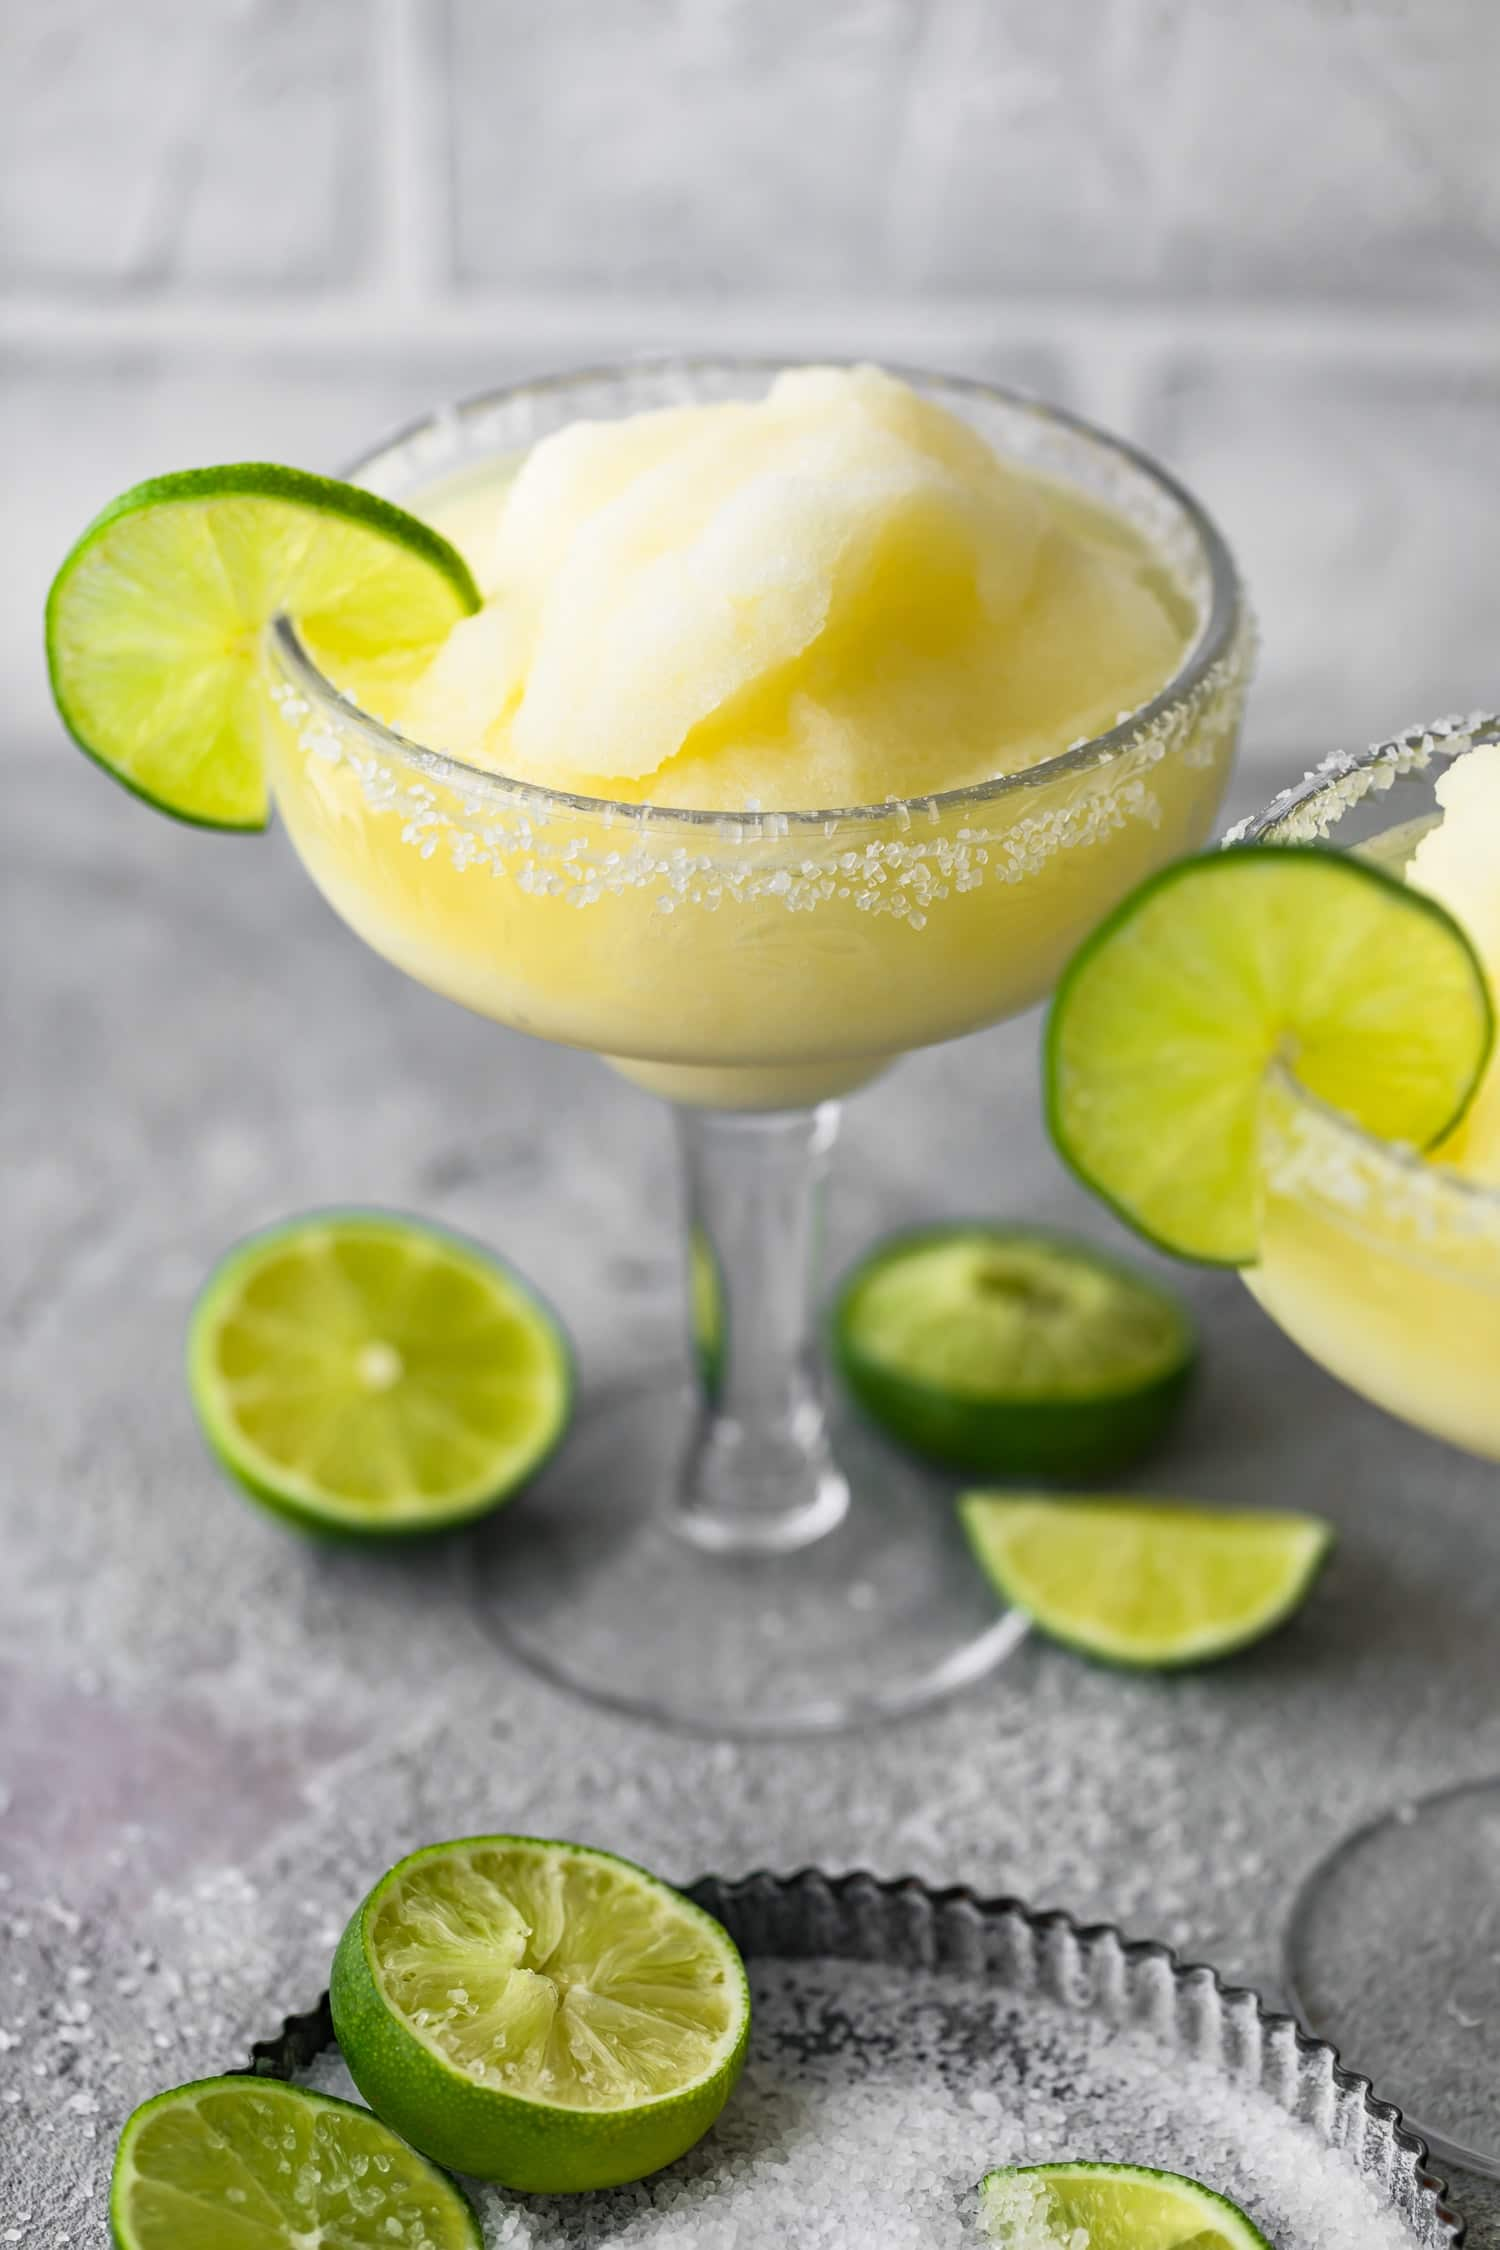 Margarita cocktail in a glass next to lime halves